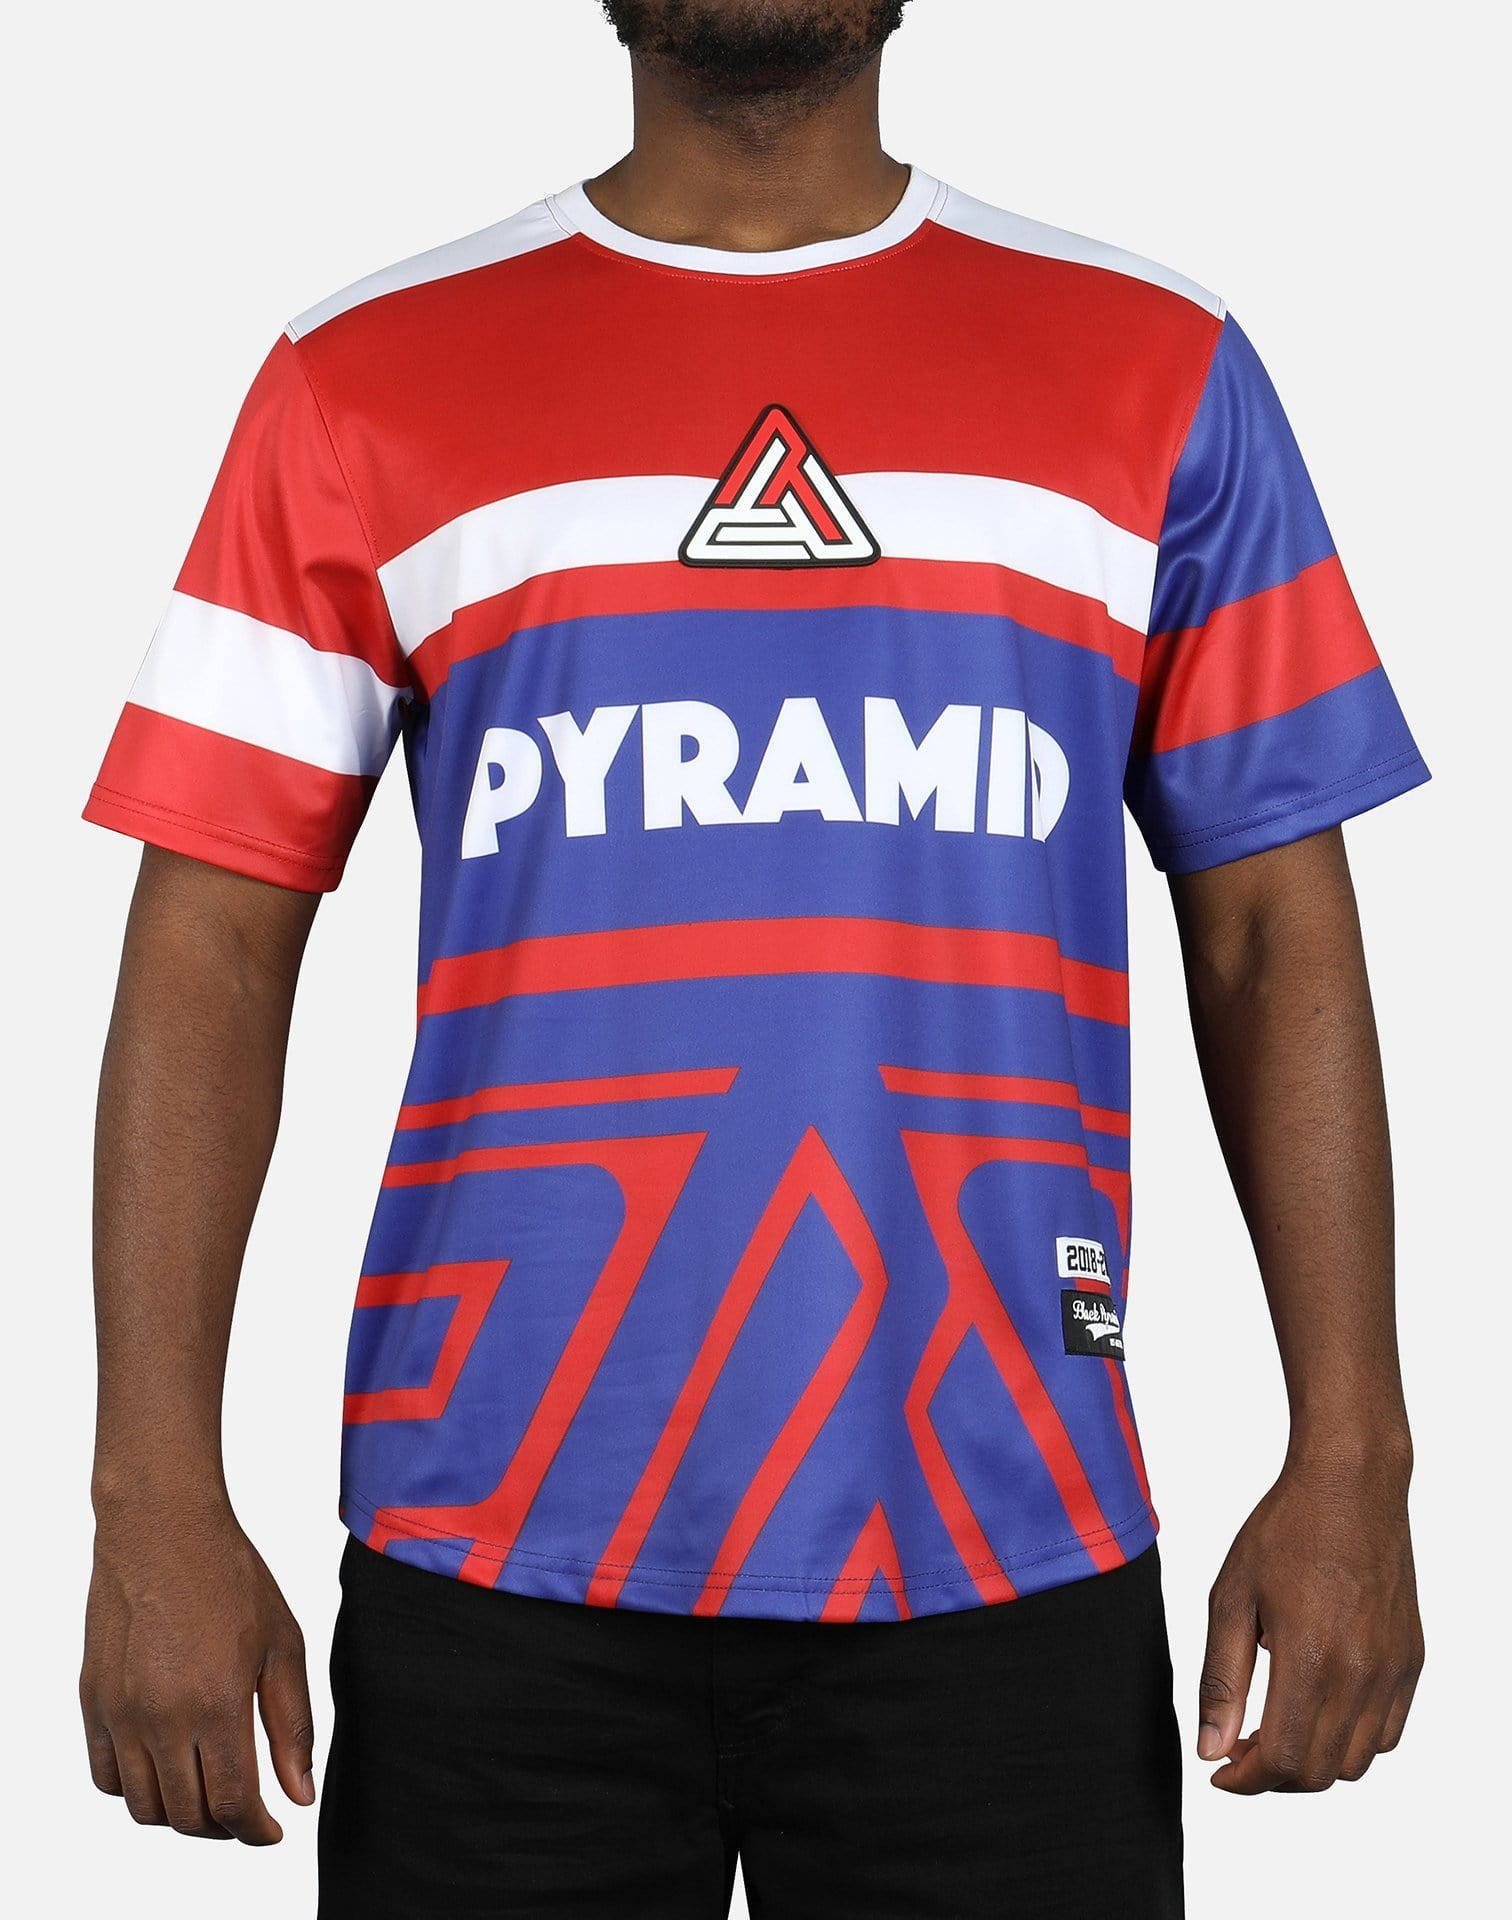 Black Pyramid Abstract Pyramid Tee